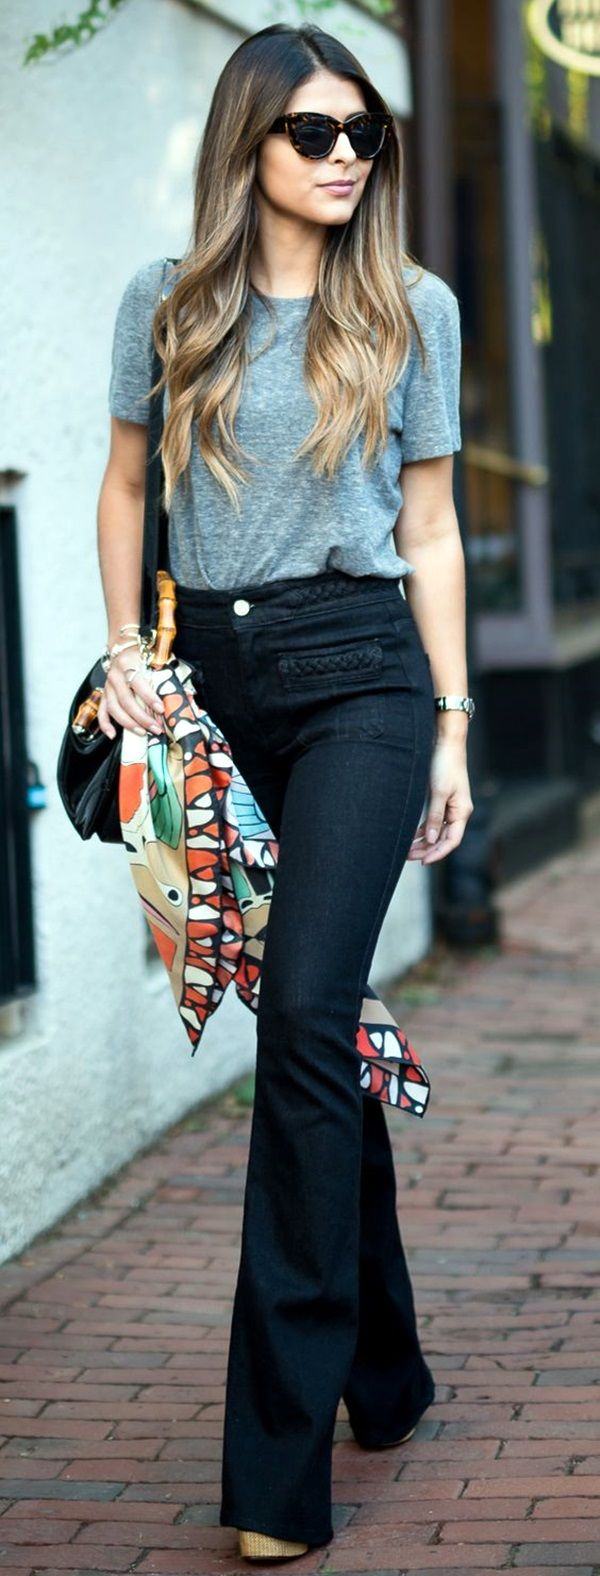 Black t shirt light blue jeans - 75 Non Boring Work Outfits To Wear This Fall